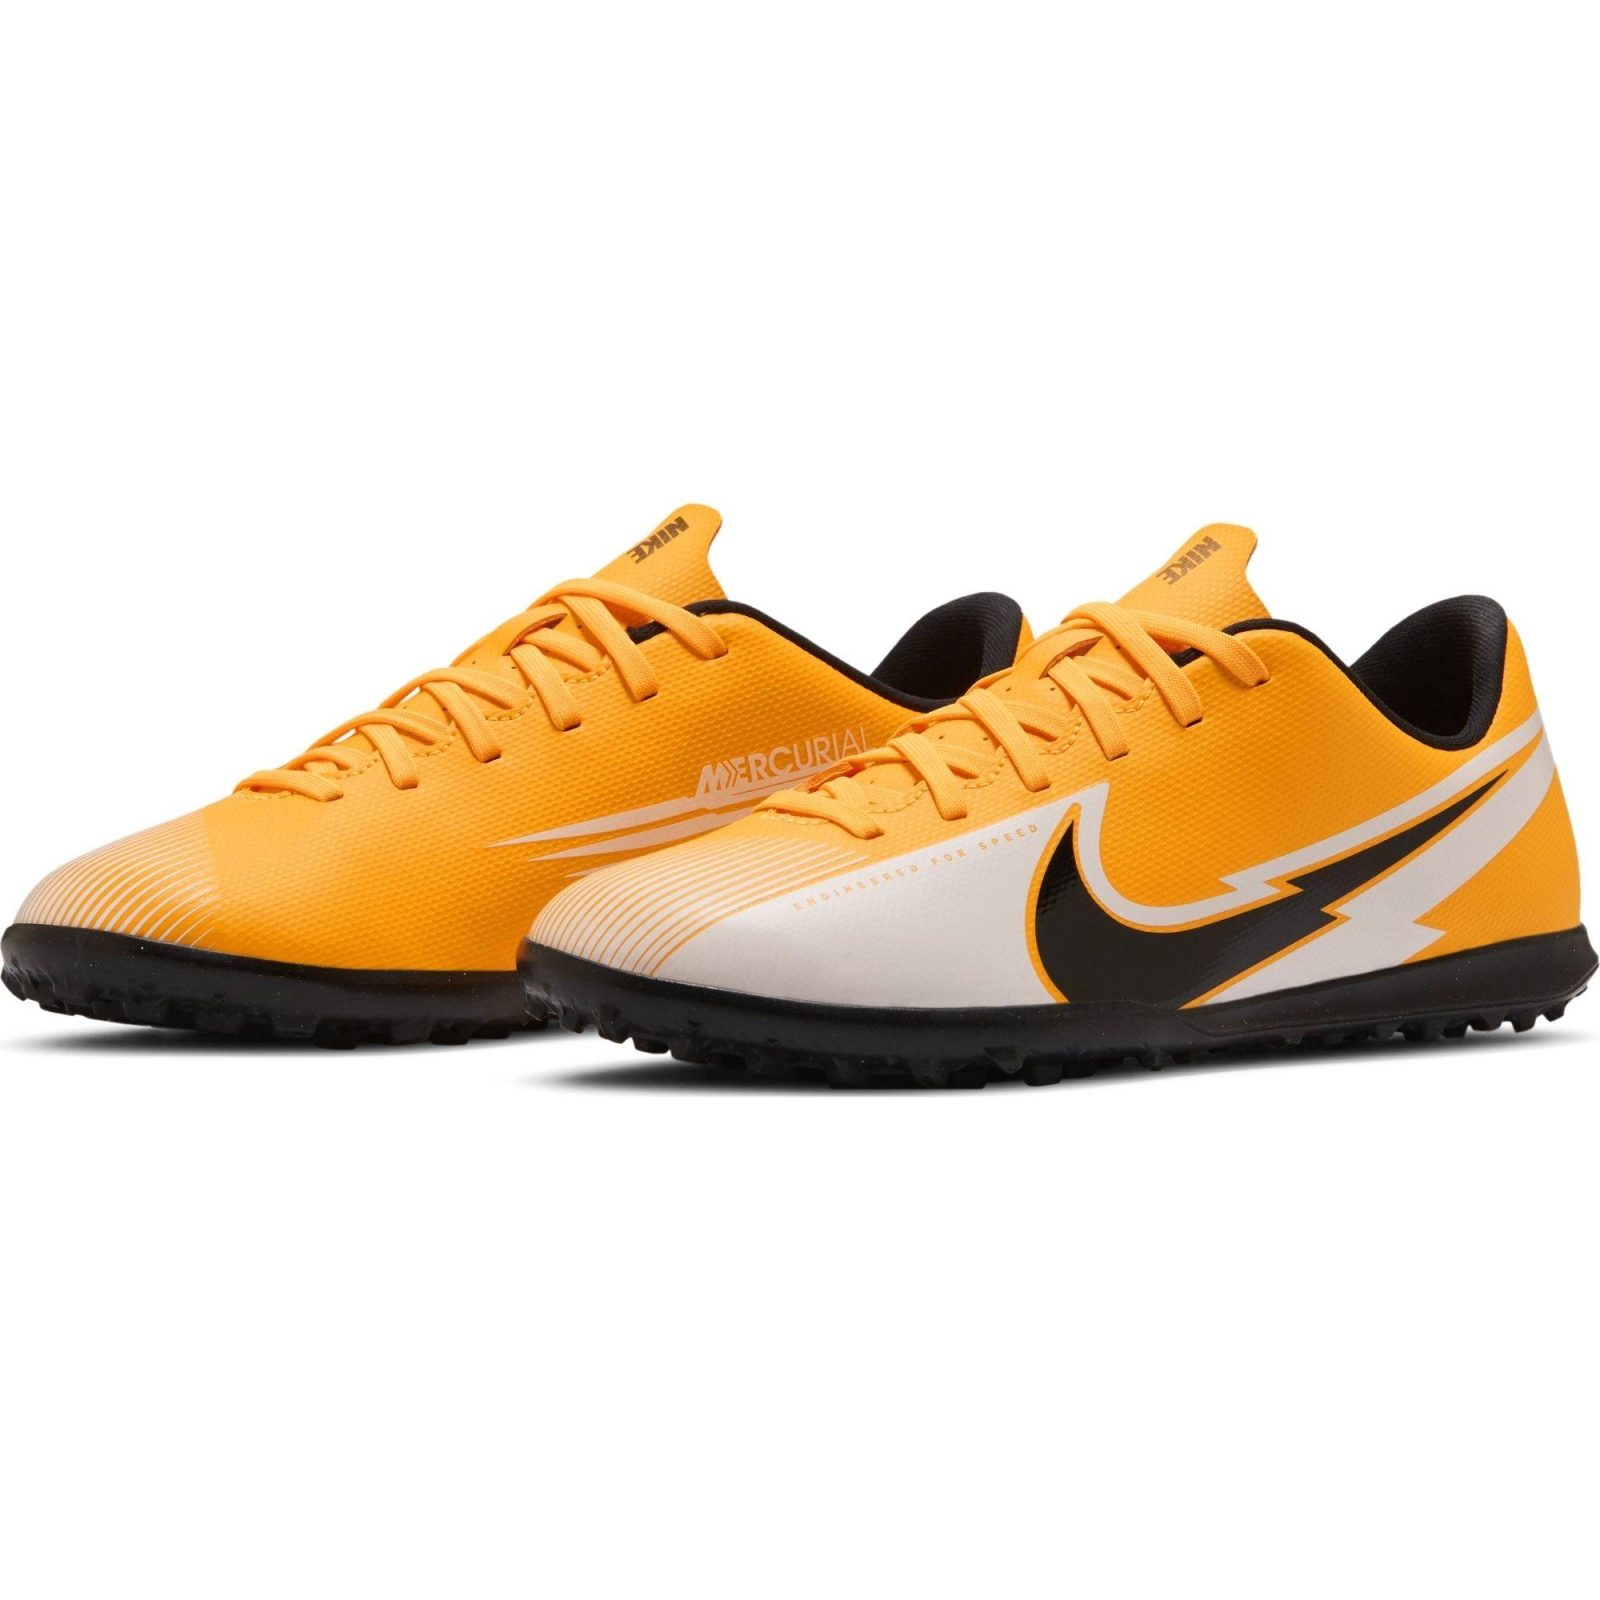 NIKE JR. MERCURIAL VAPOR 13 CLUB TF